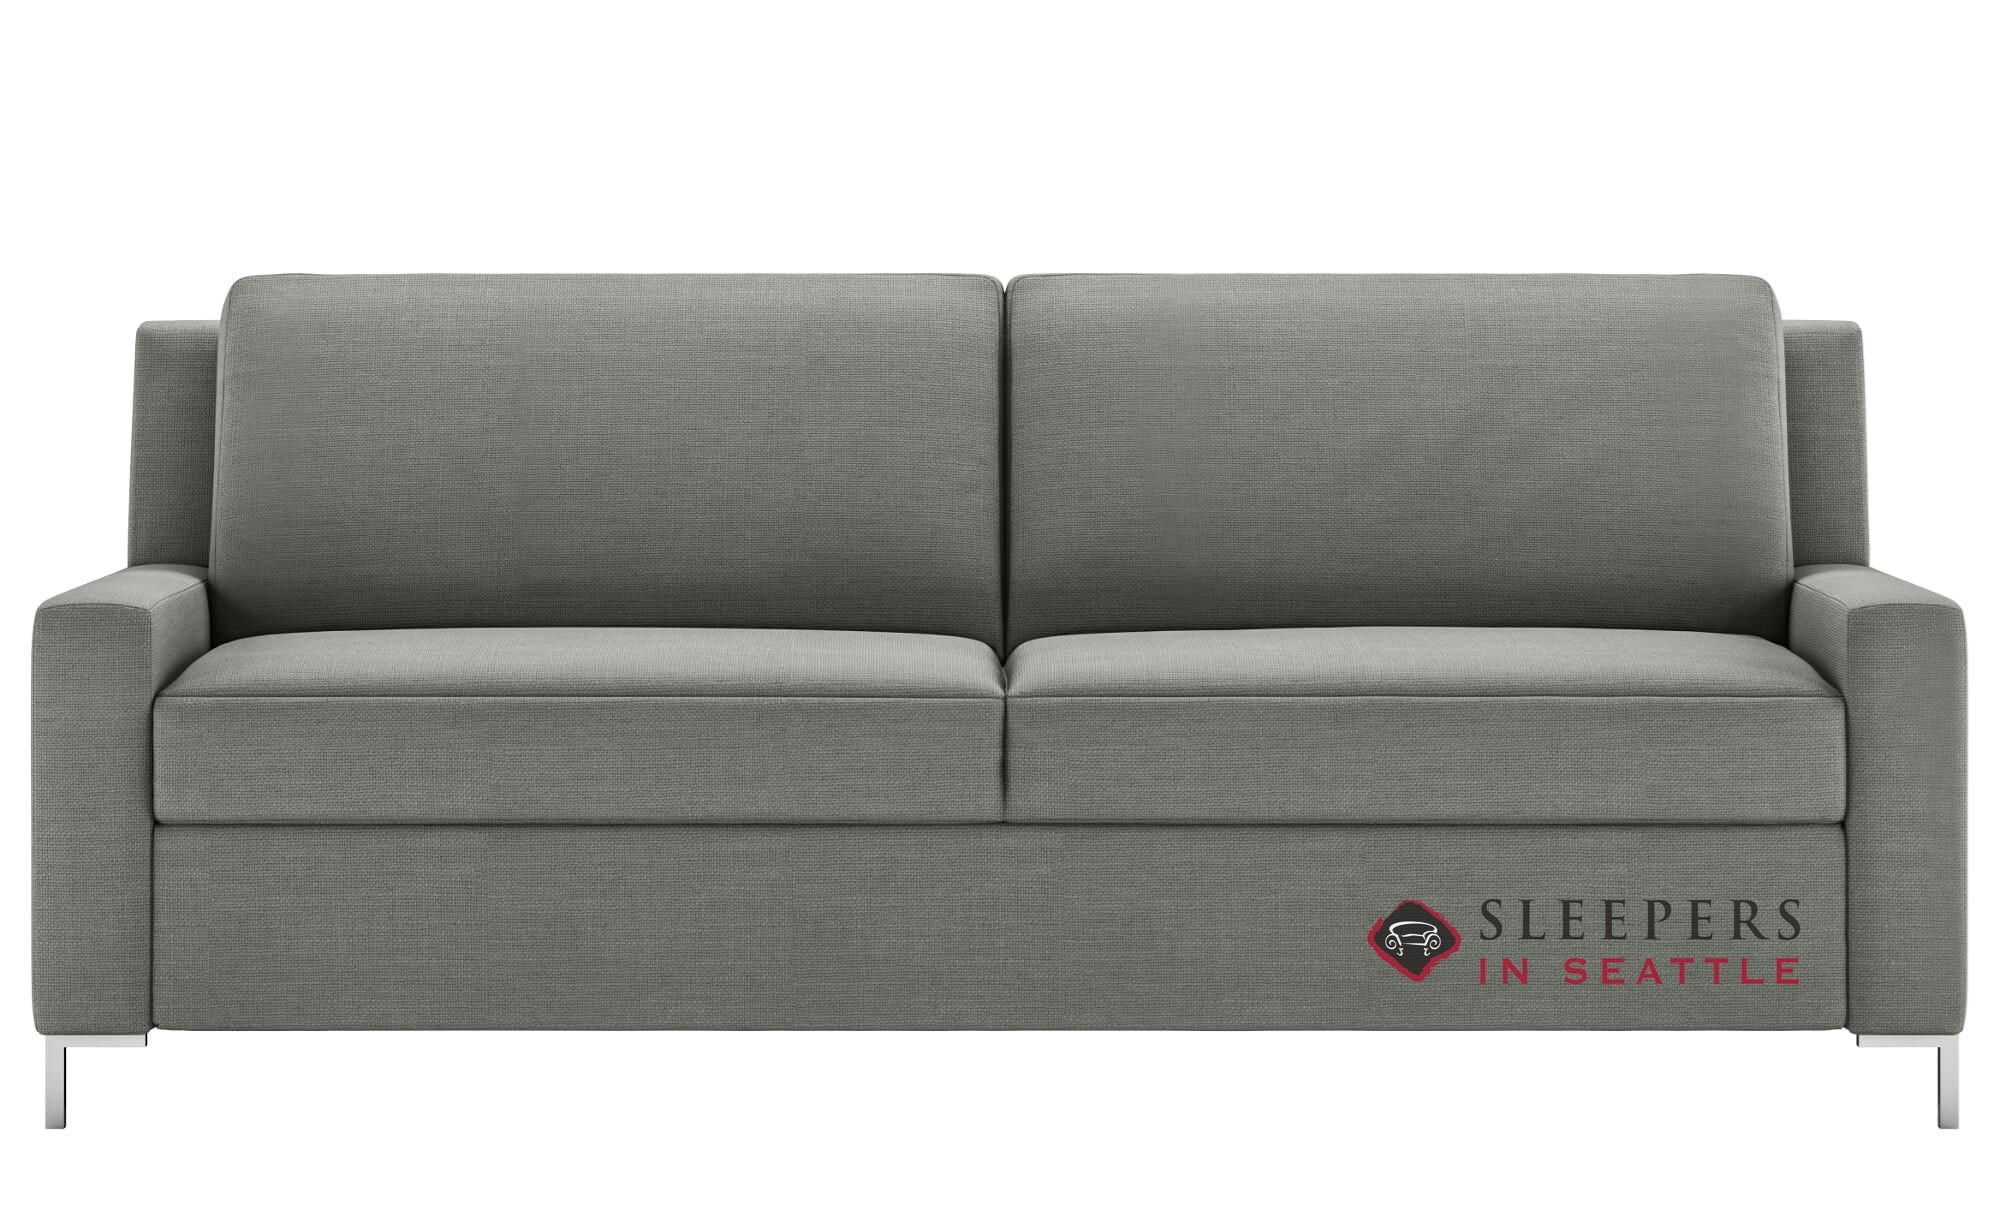 american leather bryson comfort sleeper generation viii - American Leather Sofa